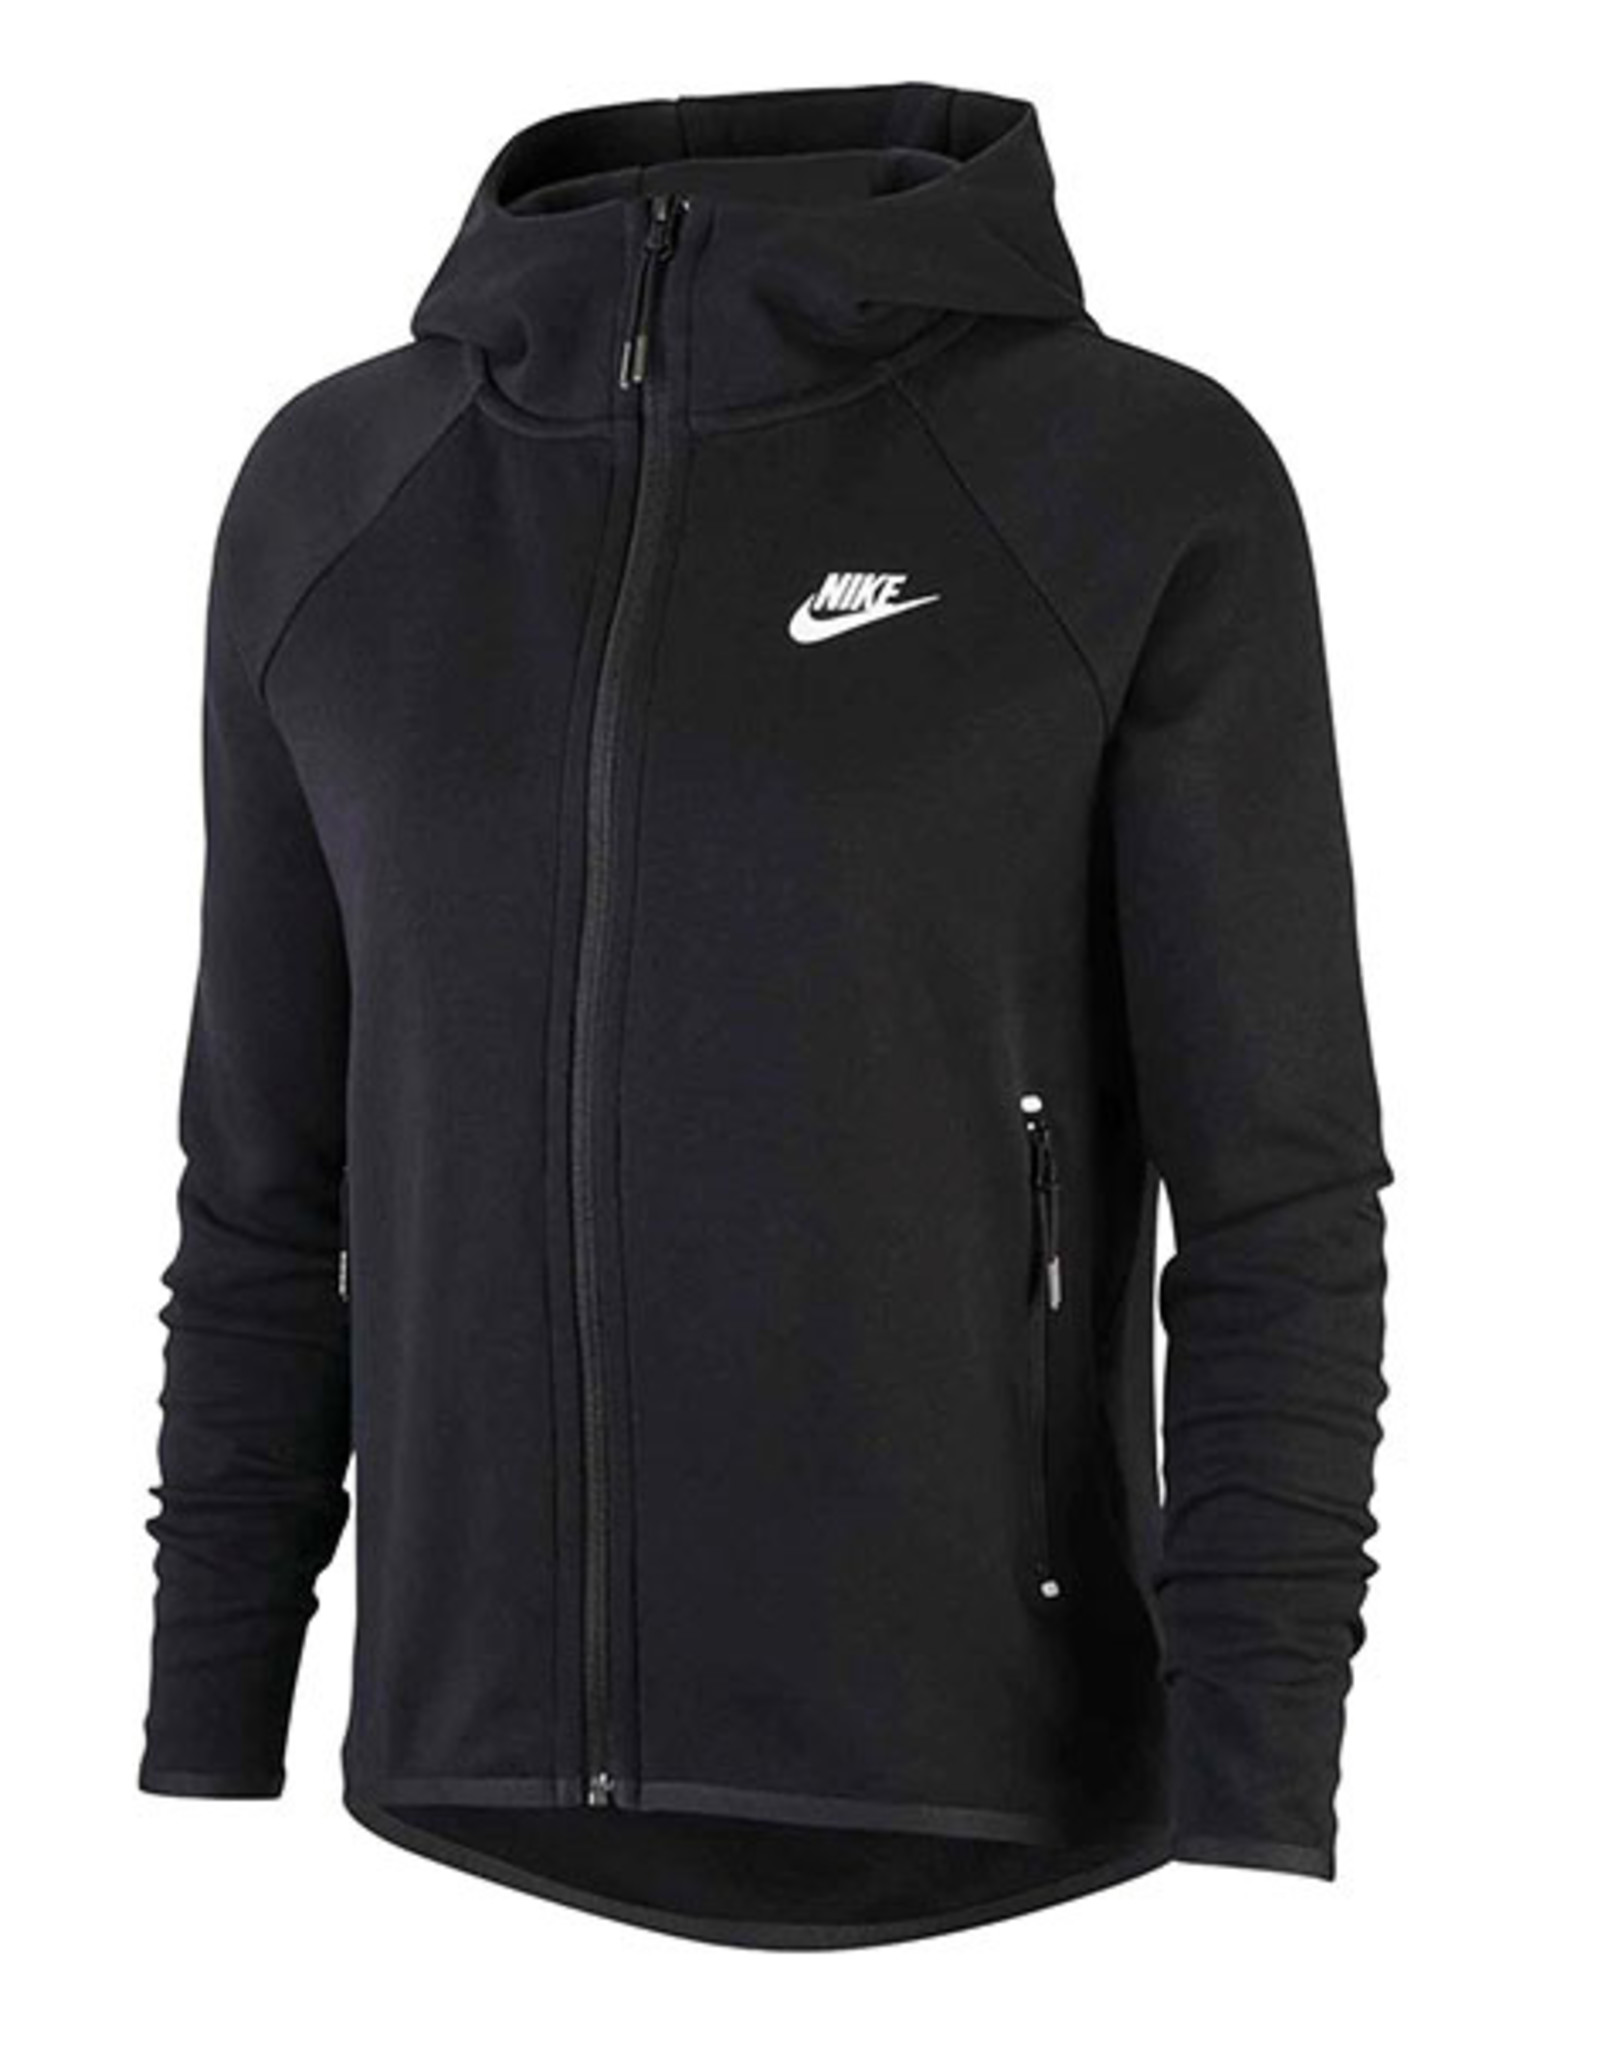 NIKE WMNS TECH FLEECE JACKET - BLACK